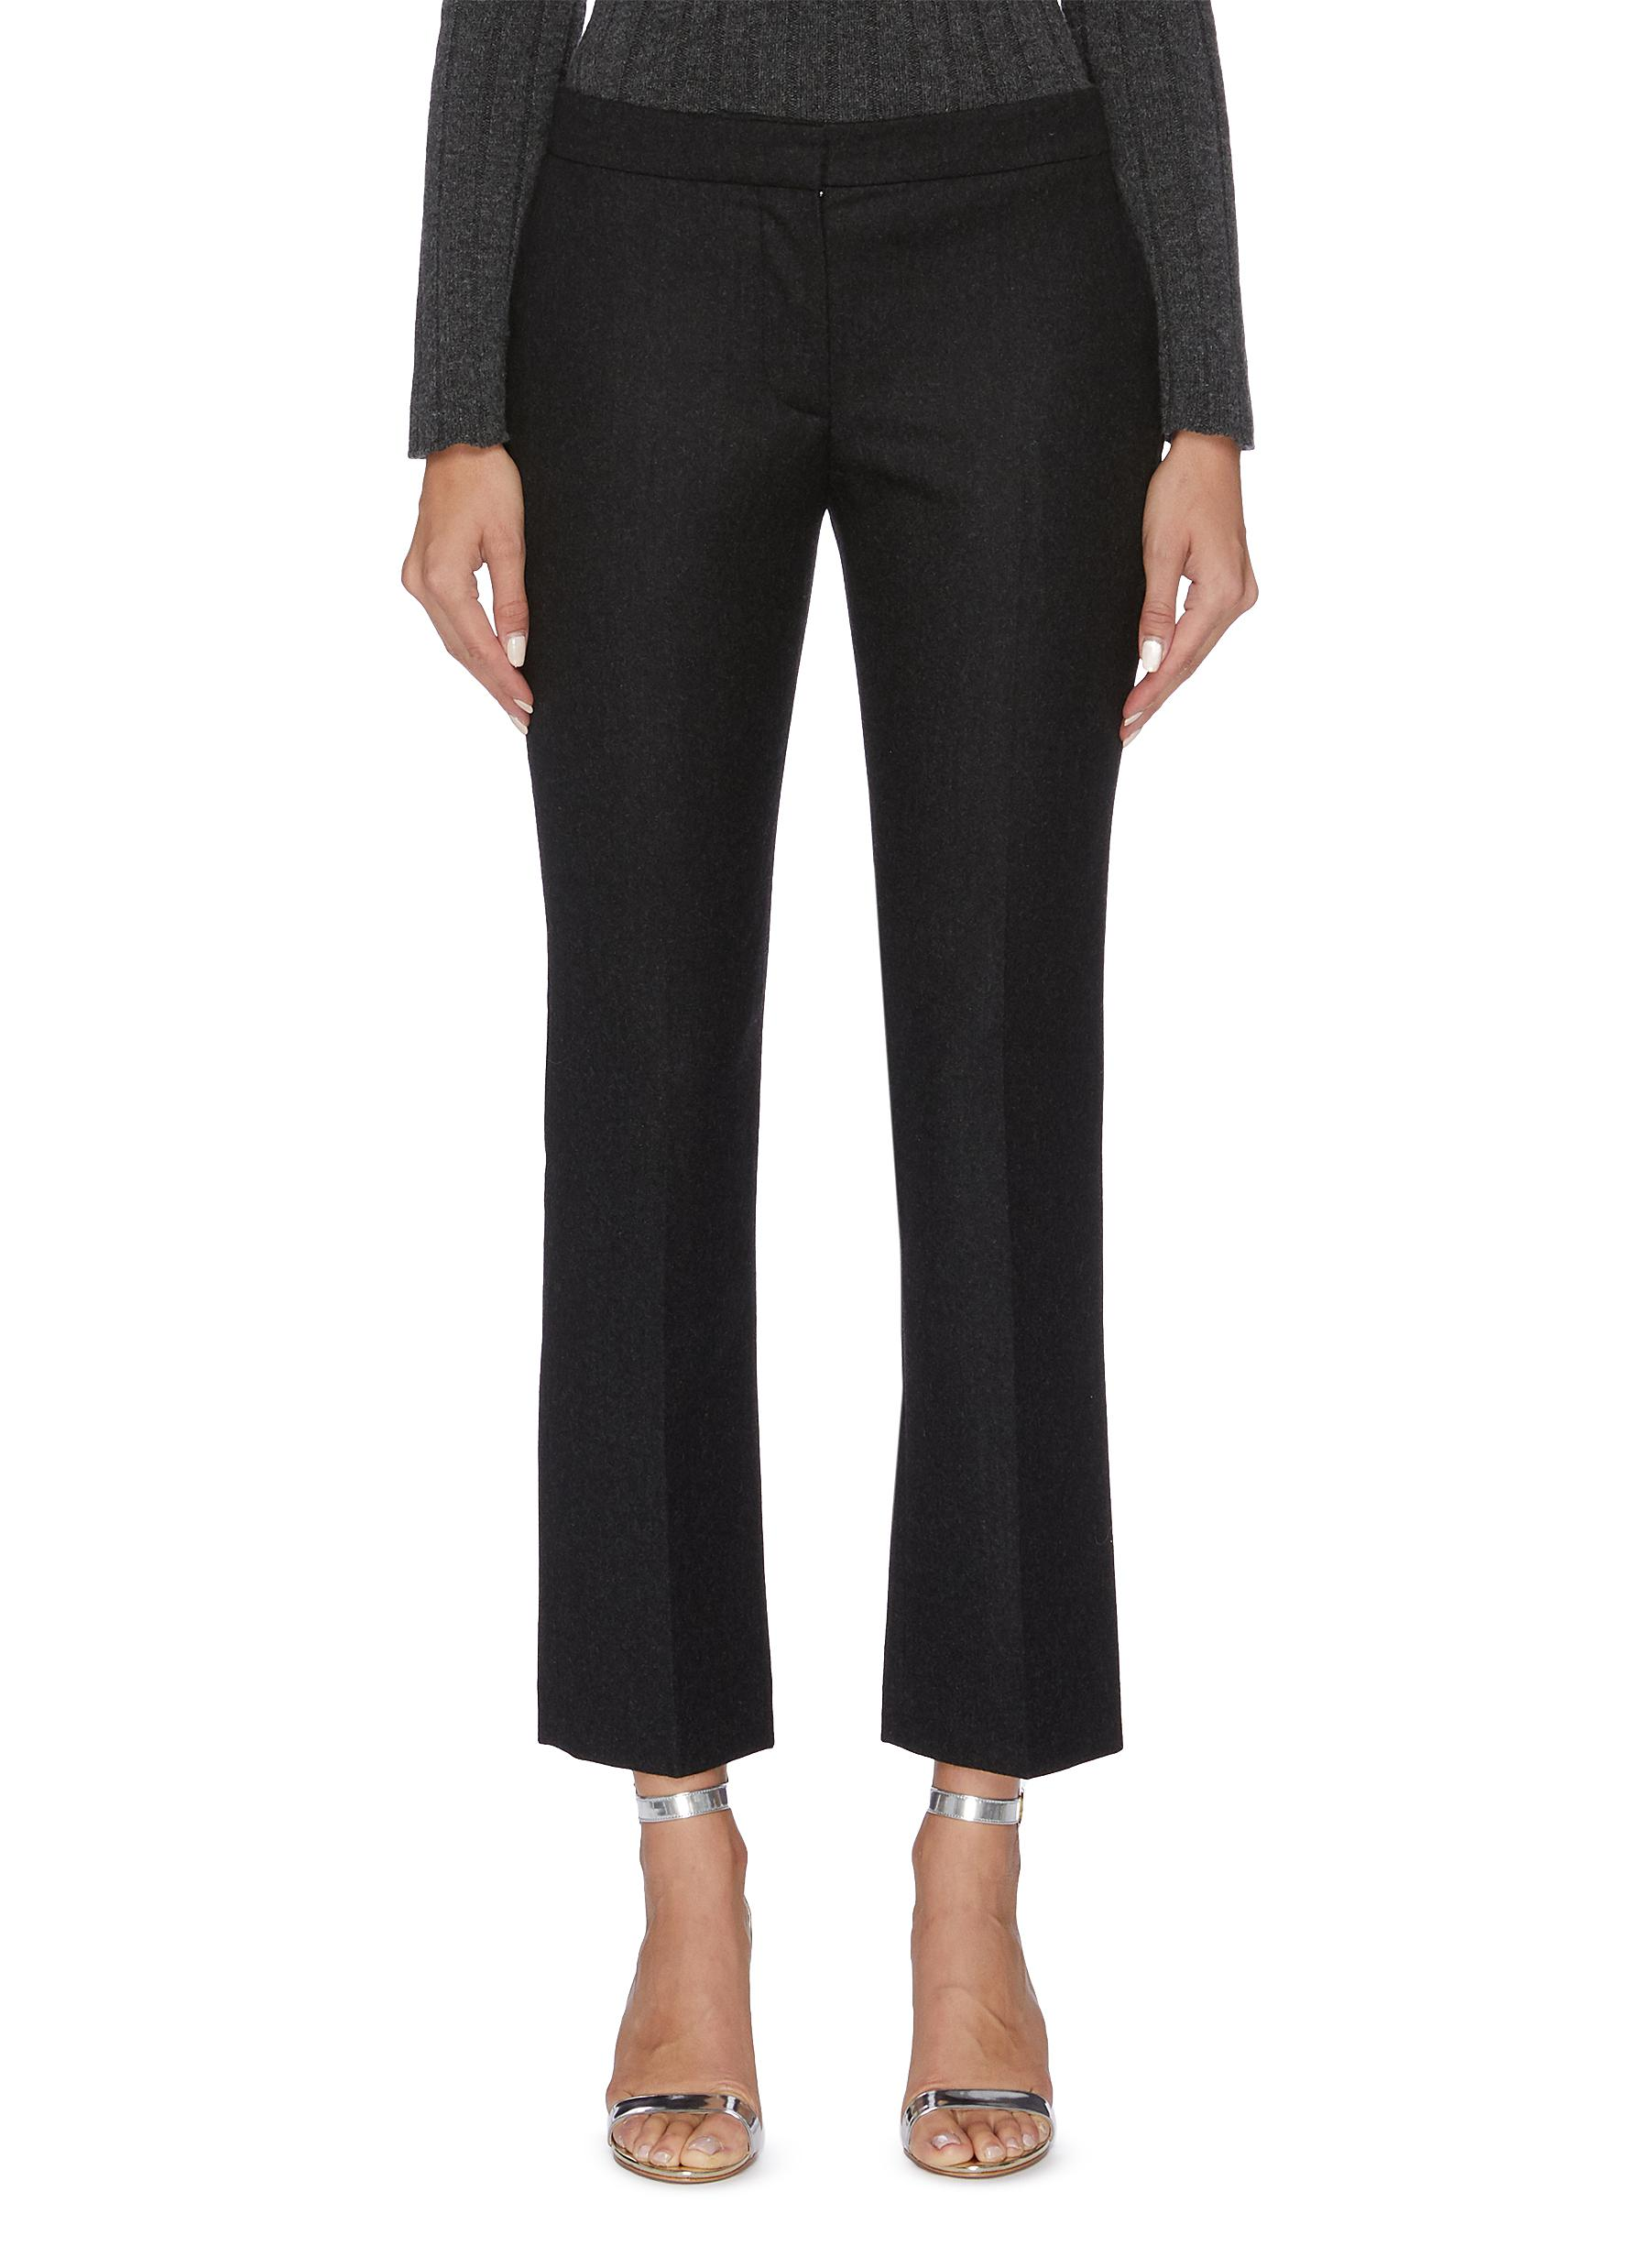 Slim fit flannel suiting pants by Alexander Mcqueen